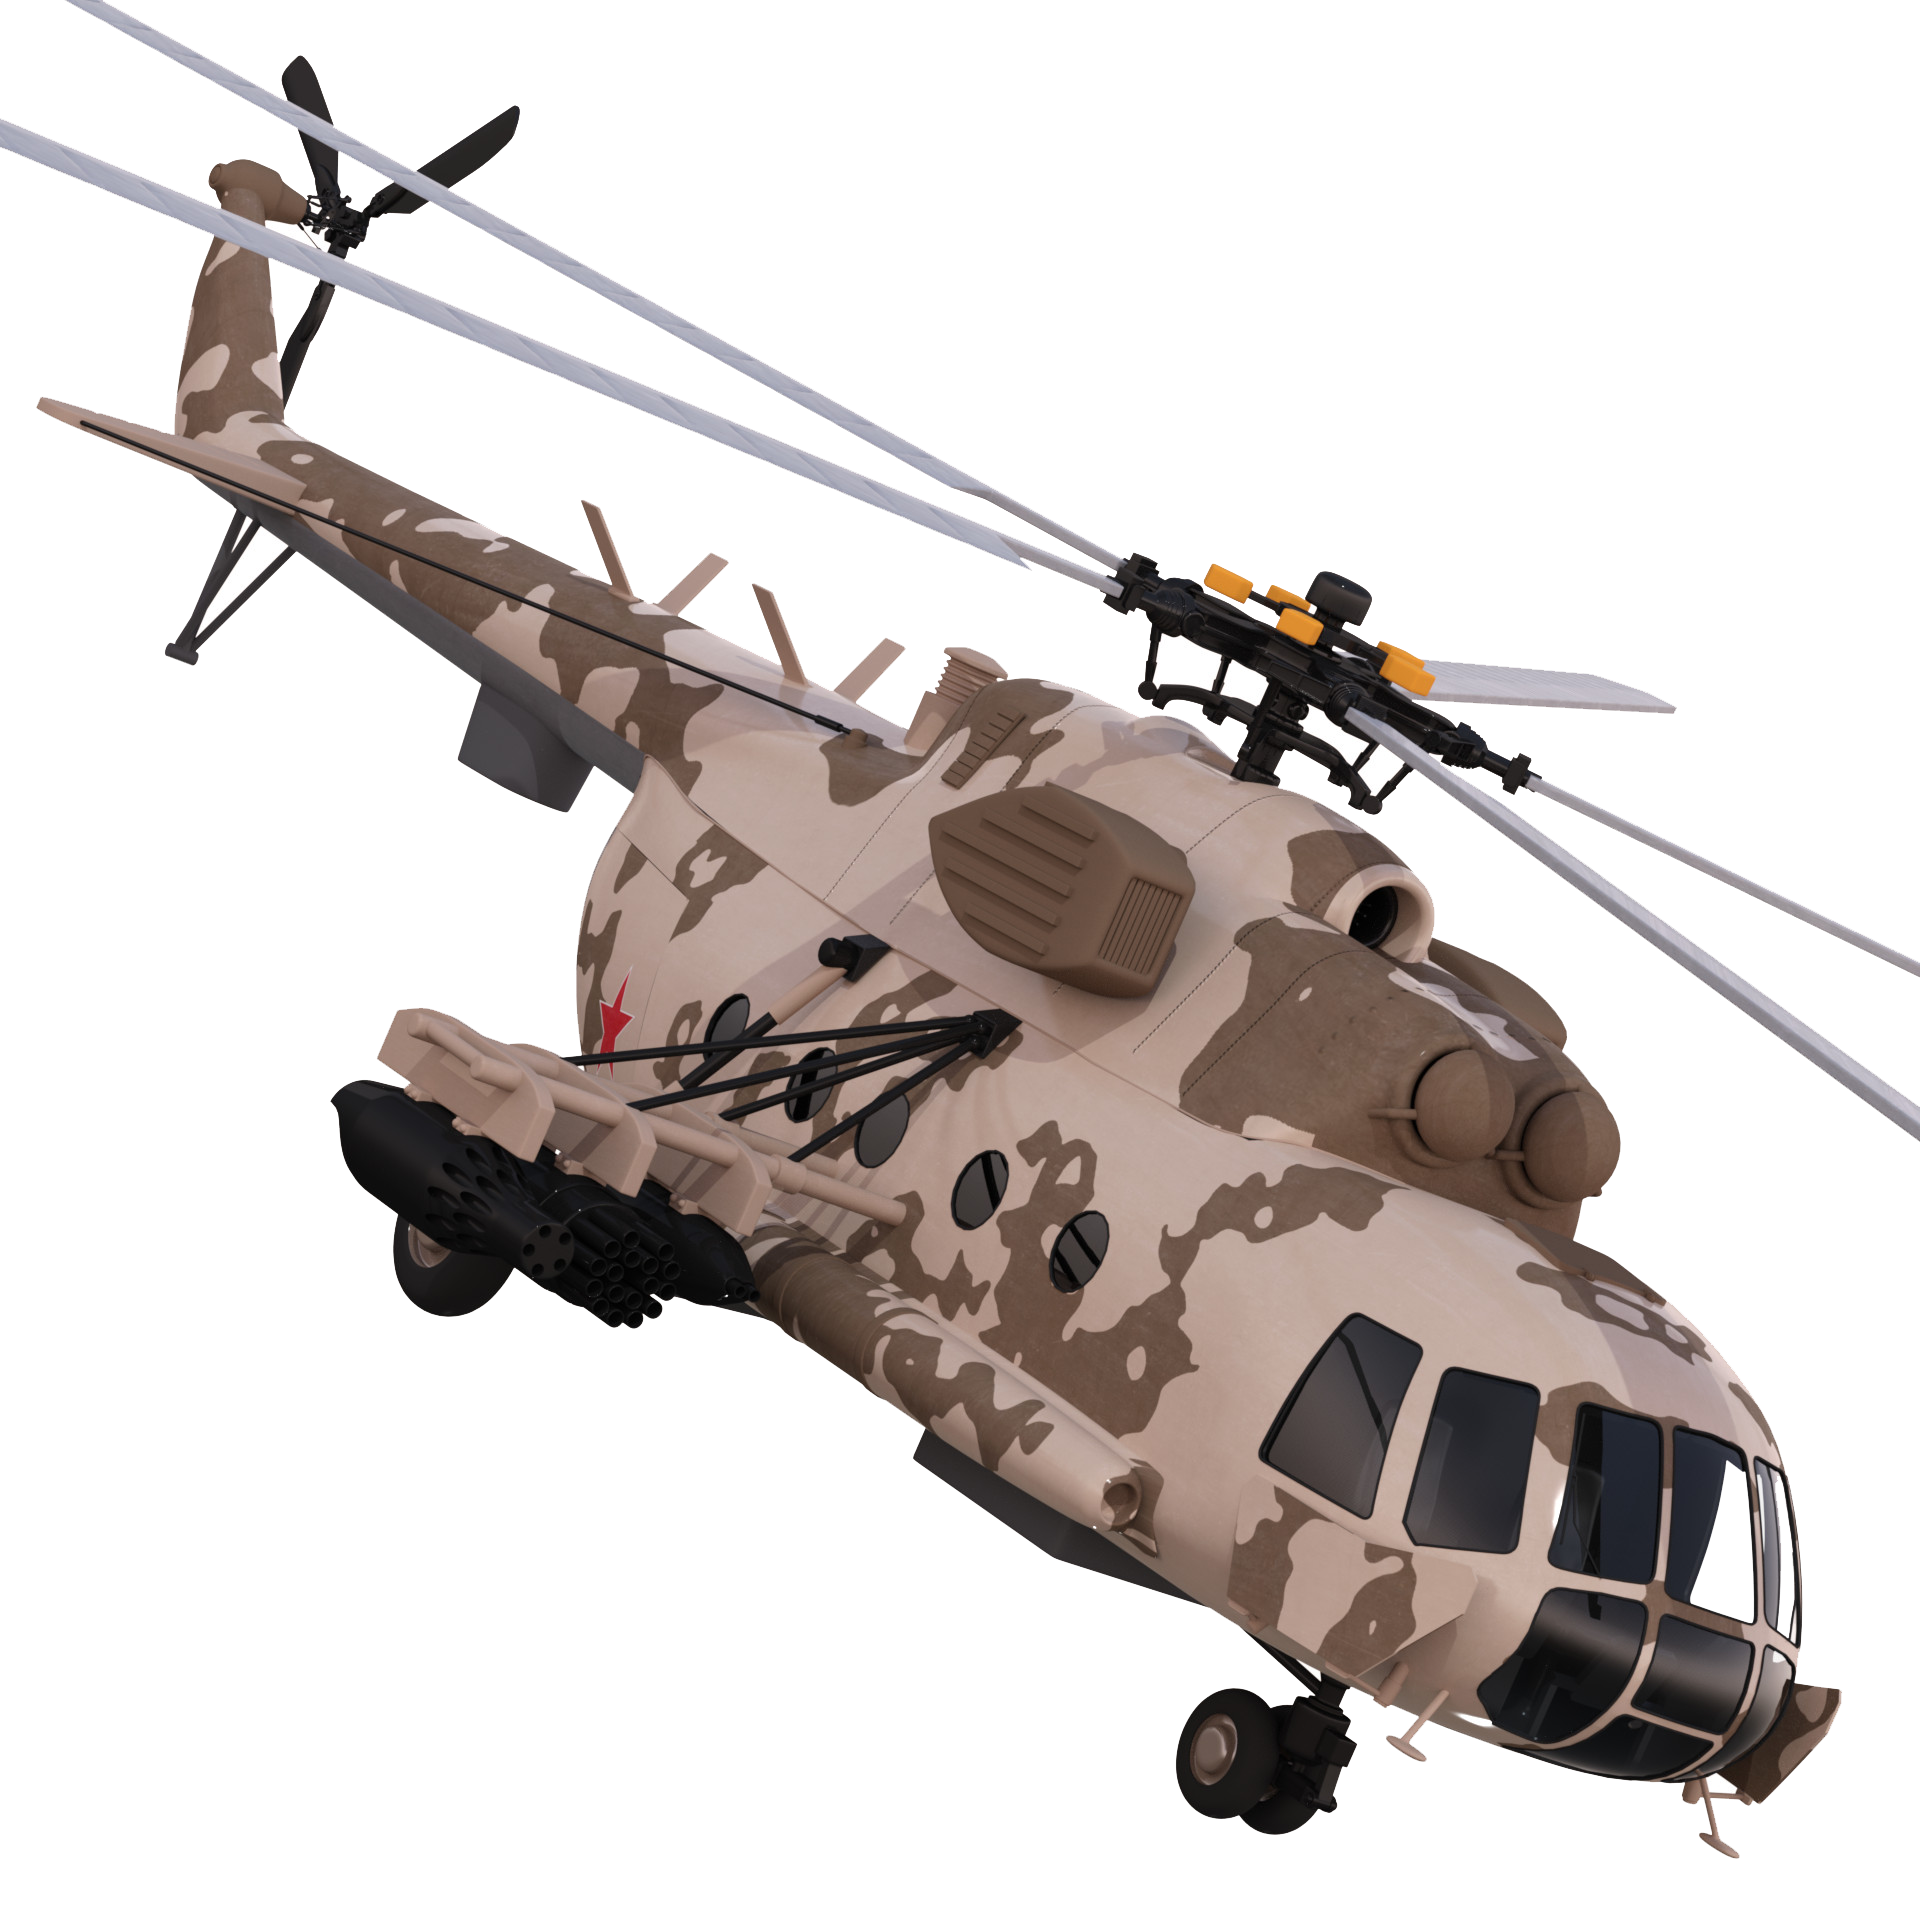 Hd png transparent images. Helicopter clipart helicopter crash